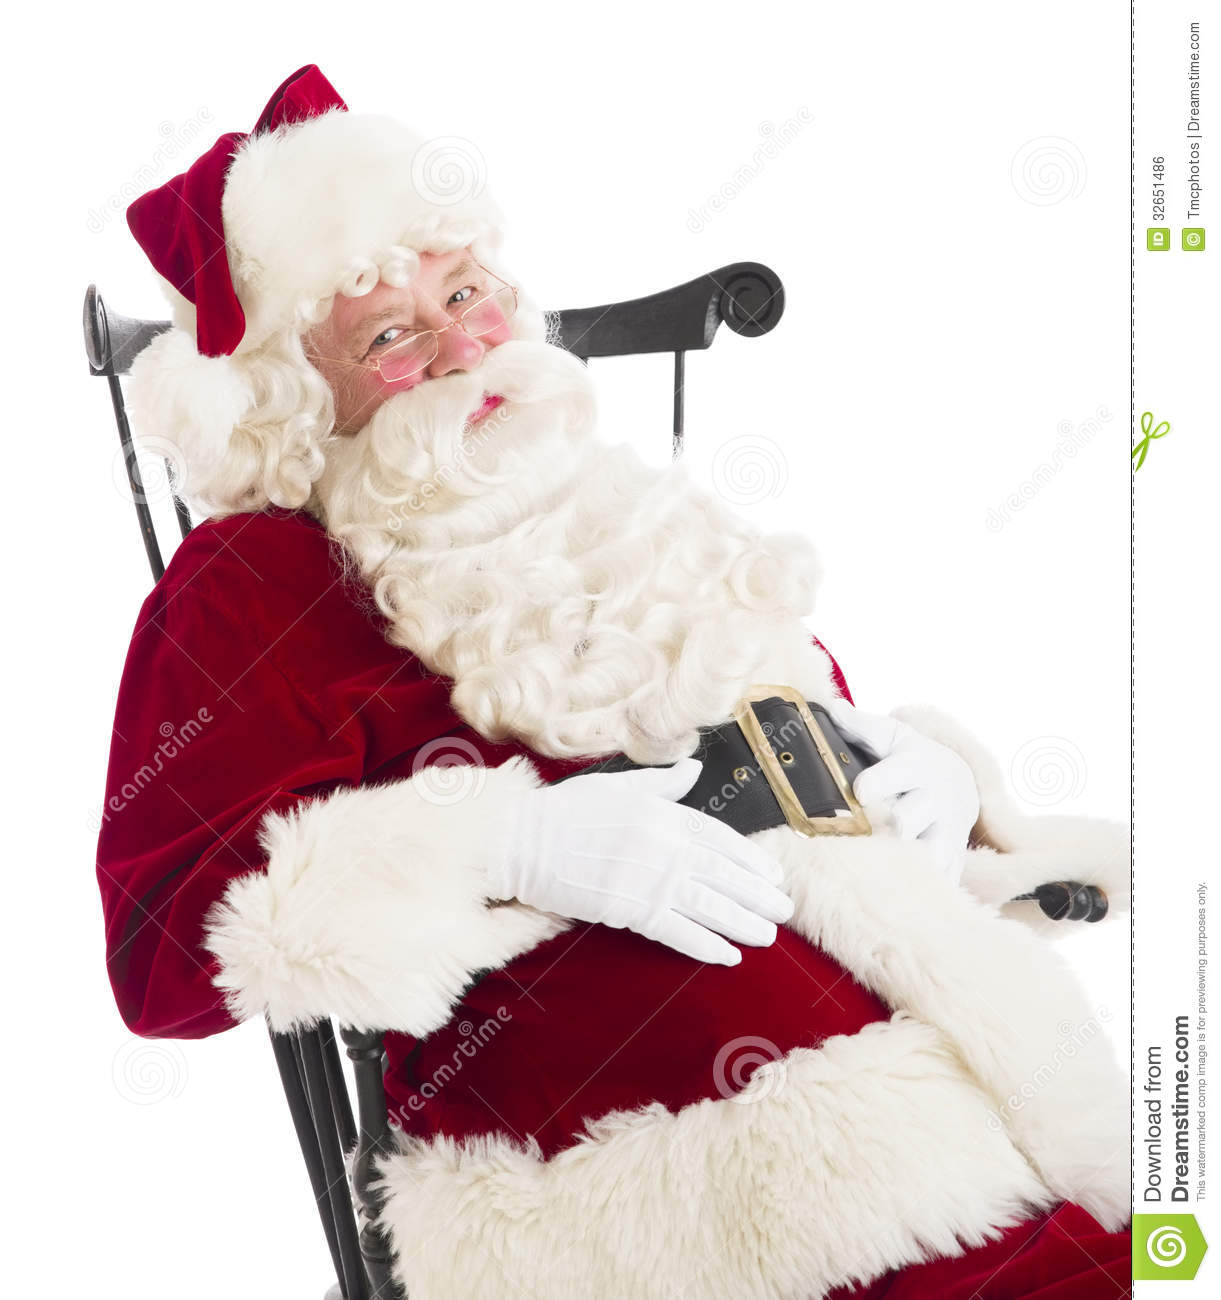 santa claus chair gray outdoor covers with hands on stomach sitting stock